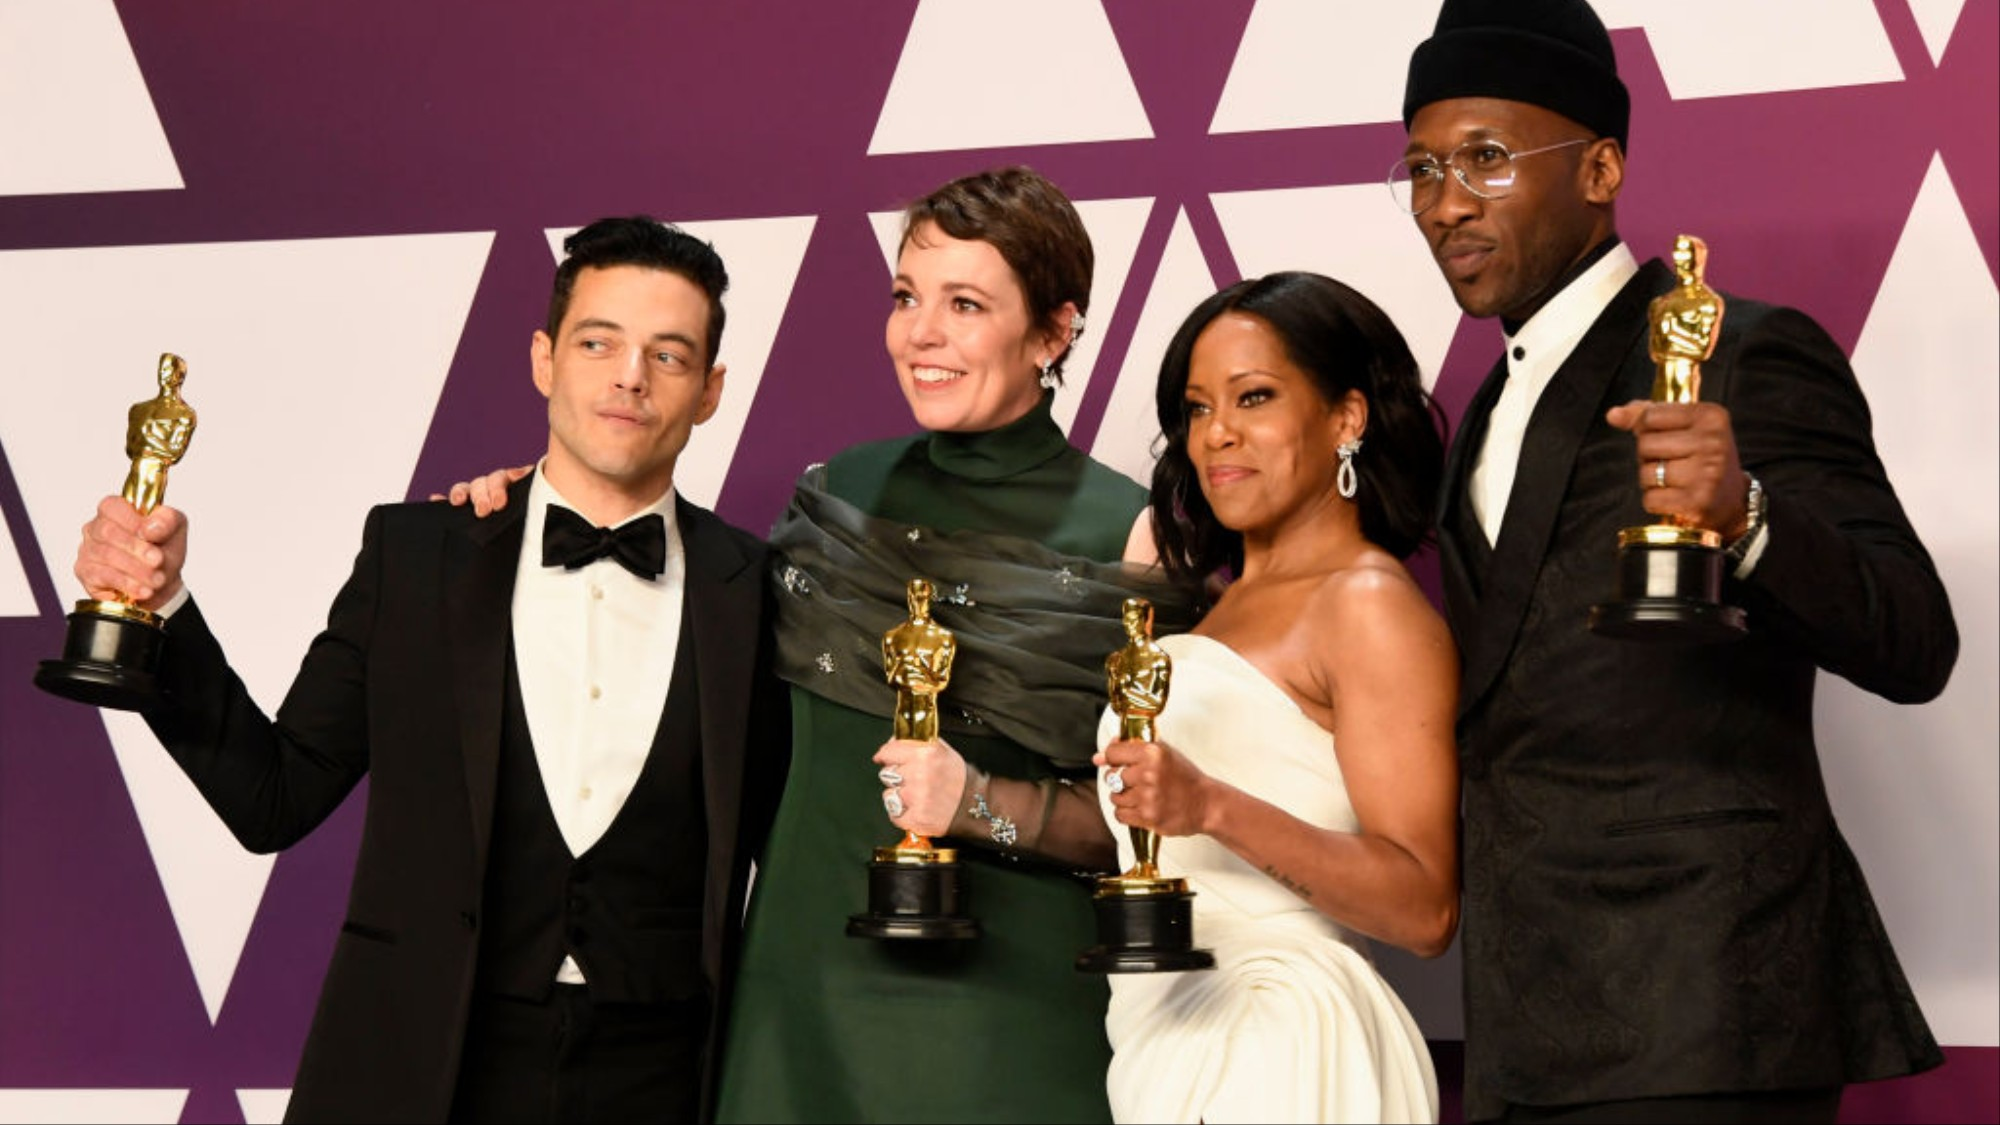 Here's a Complete List of the 2019 Academy Award Winners - VICE